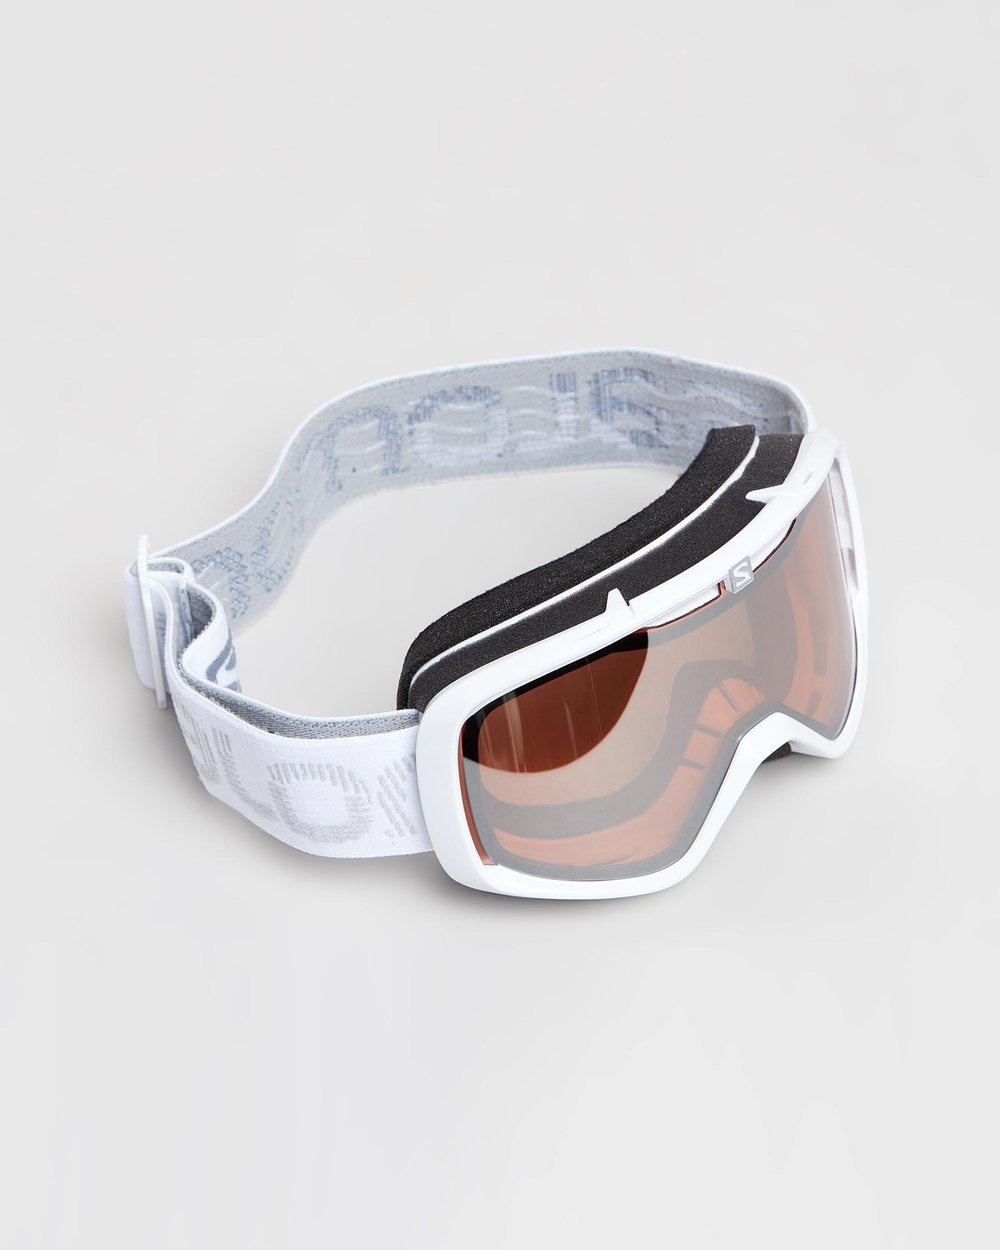 448a56a2fdb6 Aksium Access Snow Goggles - Unisex by Salomon Online | THE ICONIC |  Australia